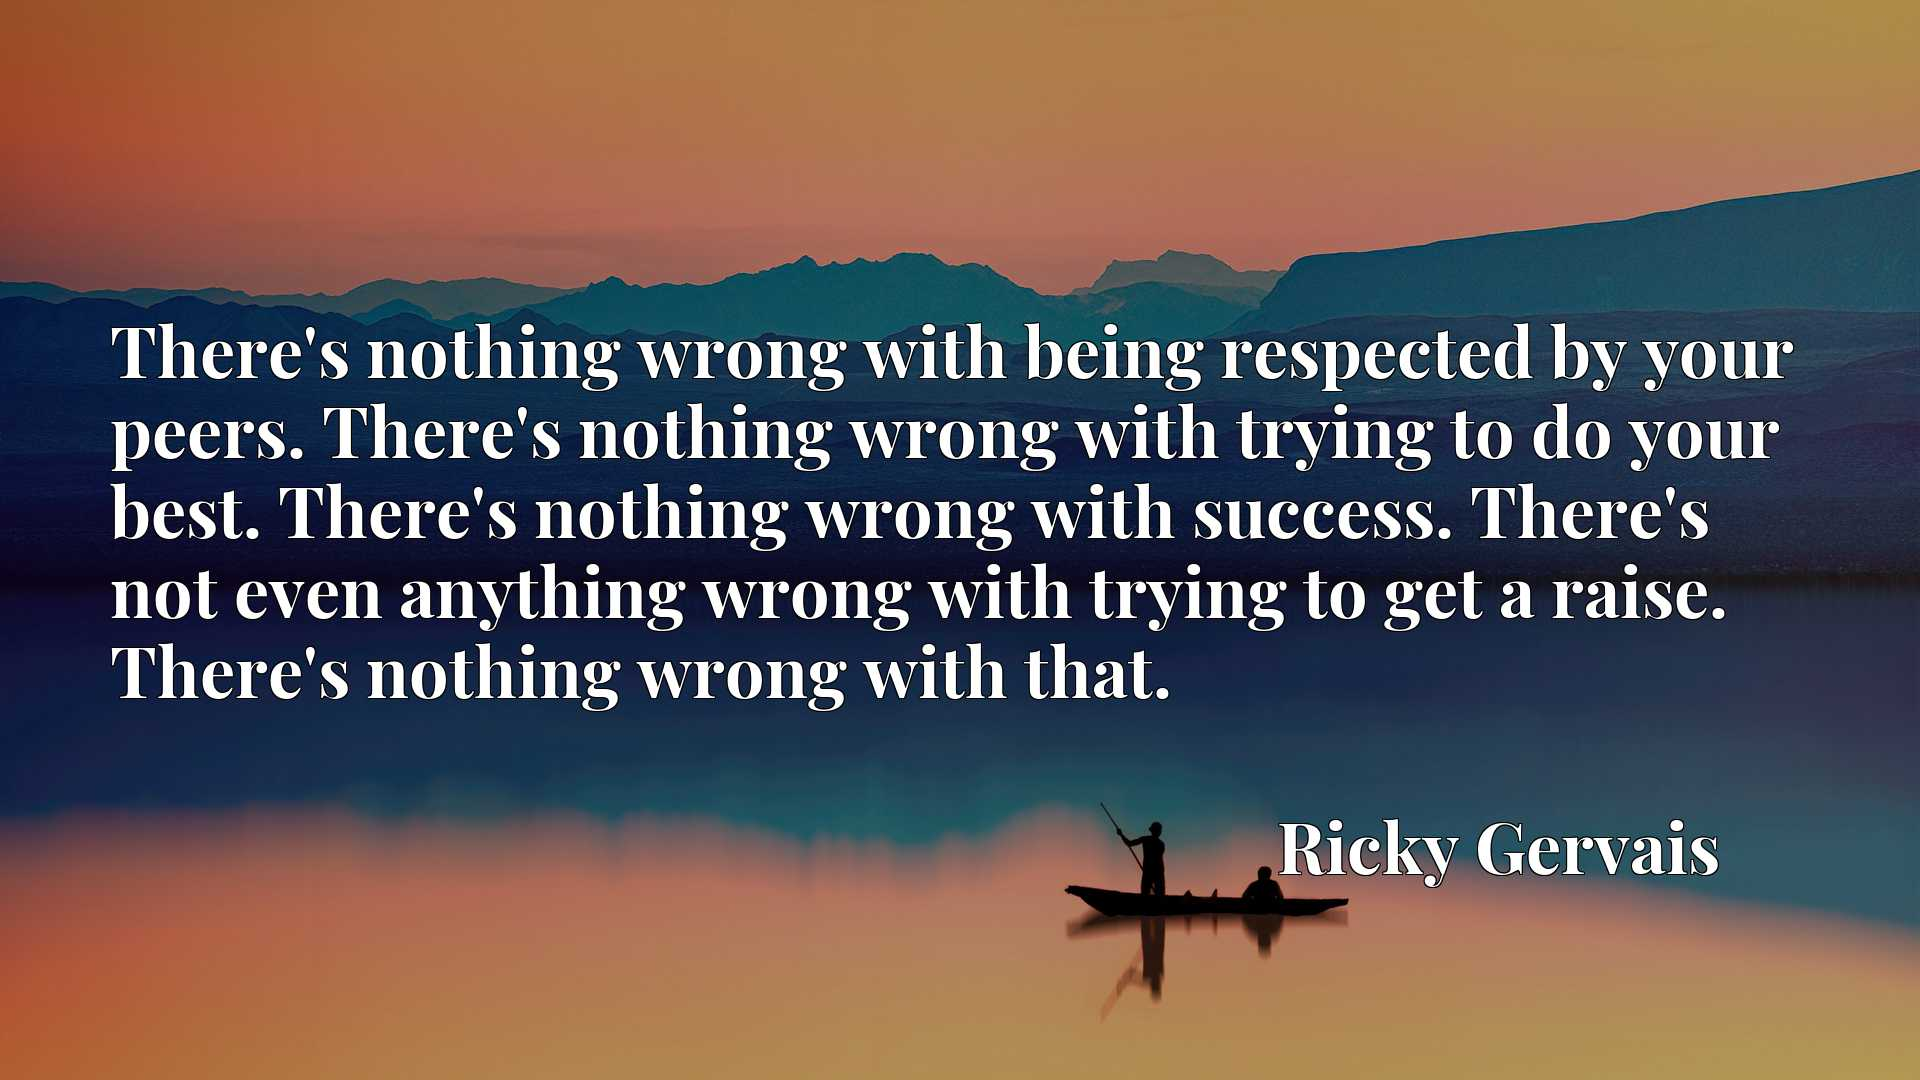 There's nothing wrong with being respected by your peers. There's nothing wrong with trying to do your best. There's nothing wrong with success. There's not even anything wrong with trying to get a raise. There's nothing wrong with that.